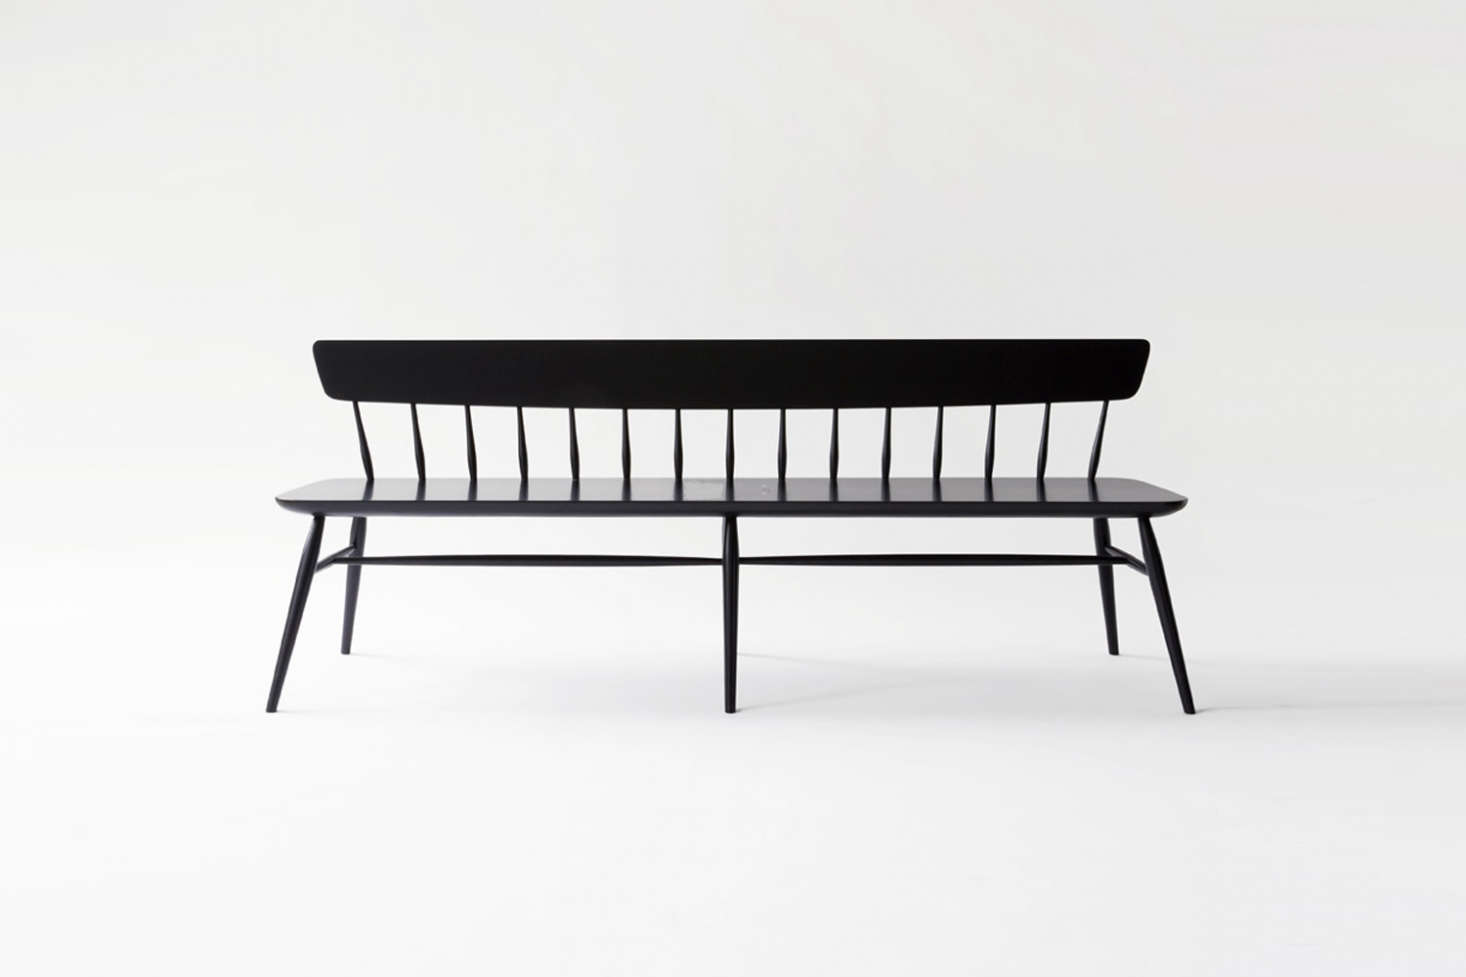 The Moving Mountains Long Windsor Bench has exaggerated proportions and is finished with a matte lacquer finish. Contact Moving Mountains for price and ordering information.